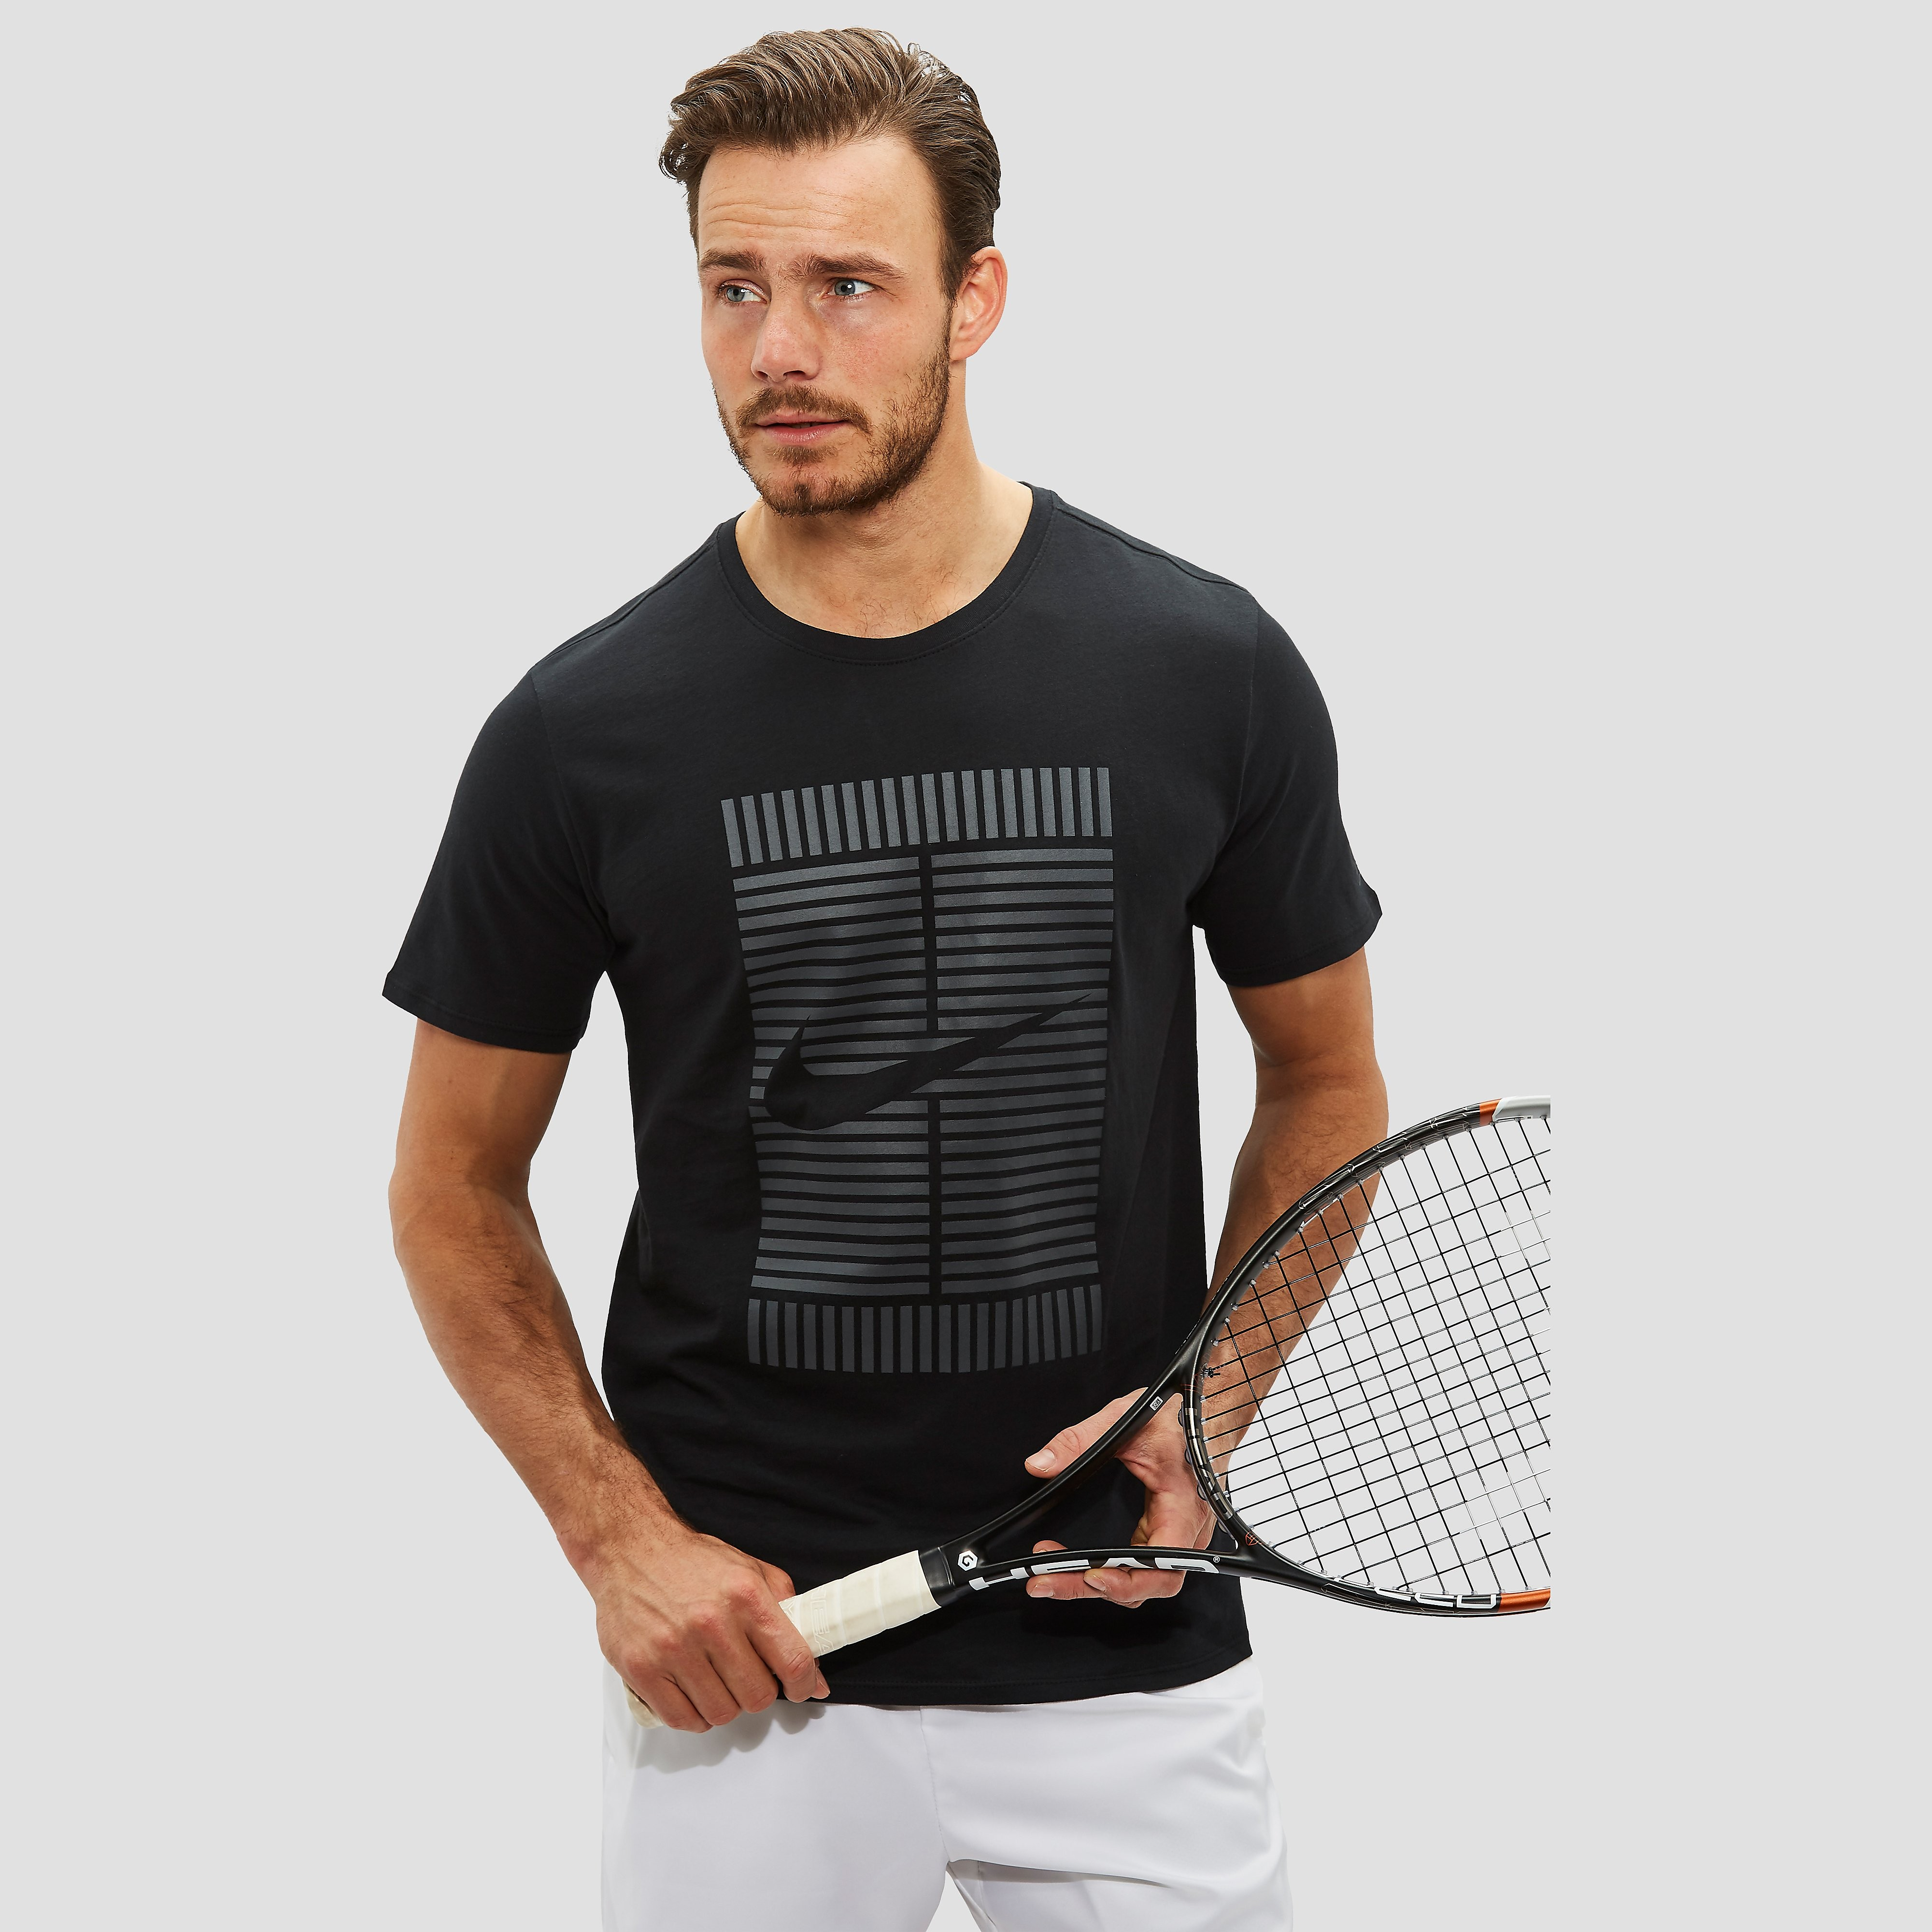 NIKE COURT TENNISSHIRT ZWART HEREN